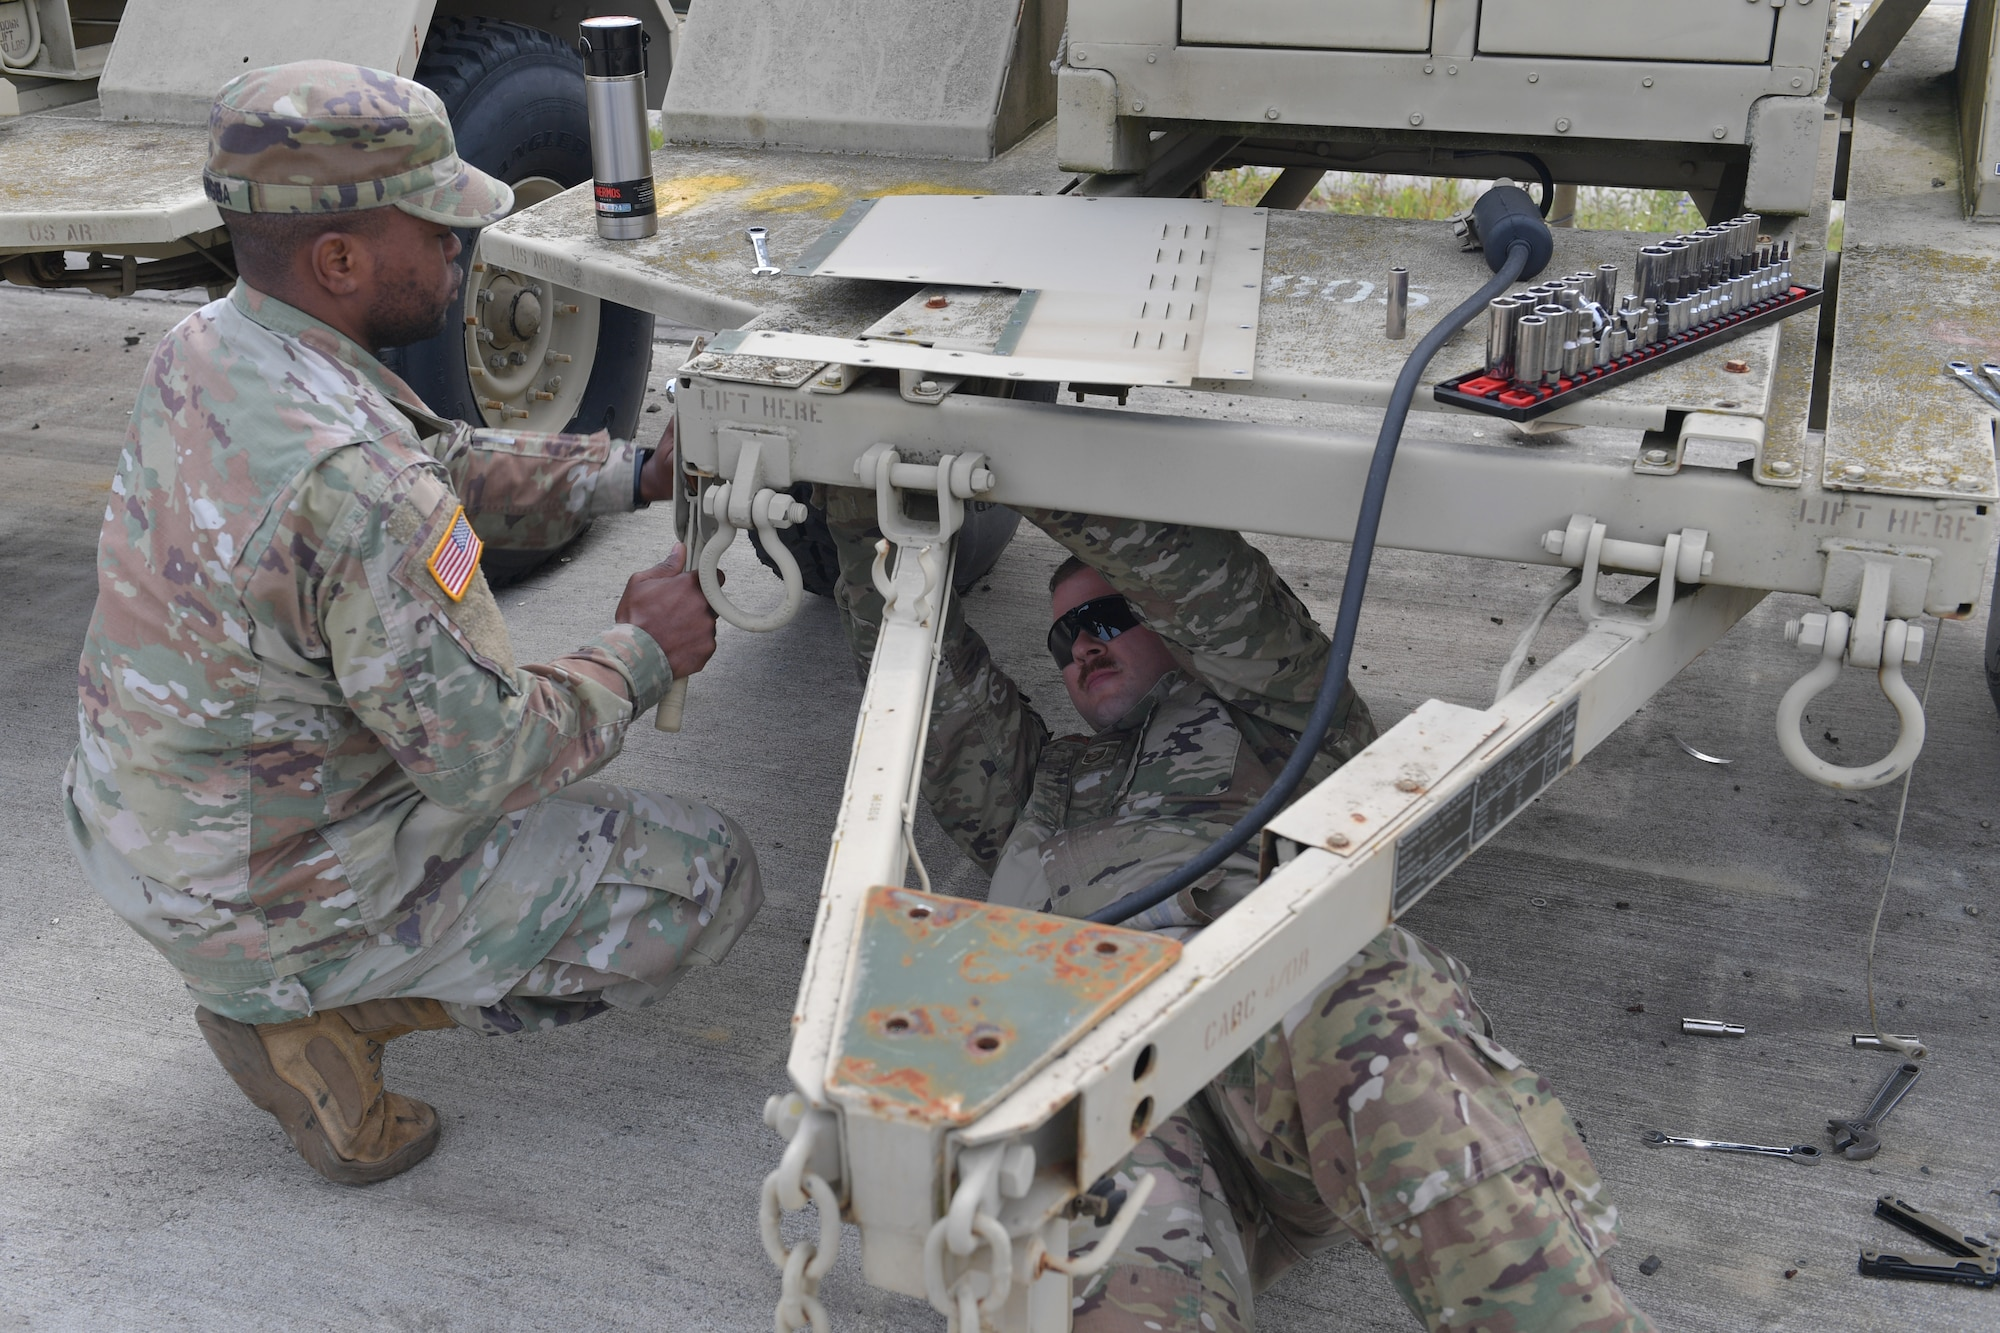 Two men working on a trailer.